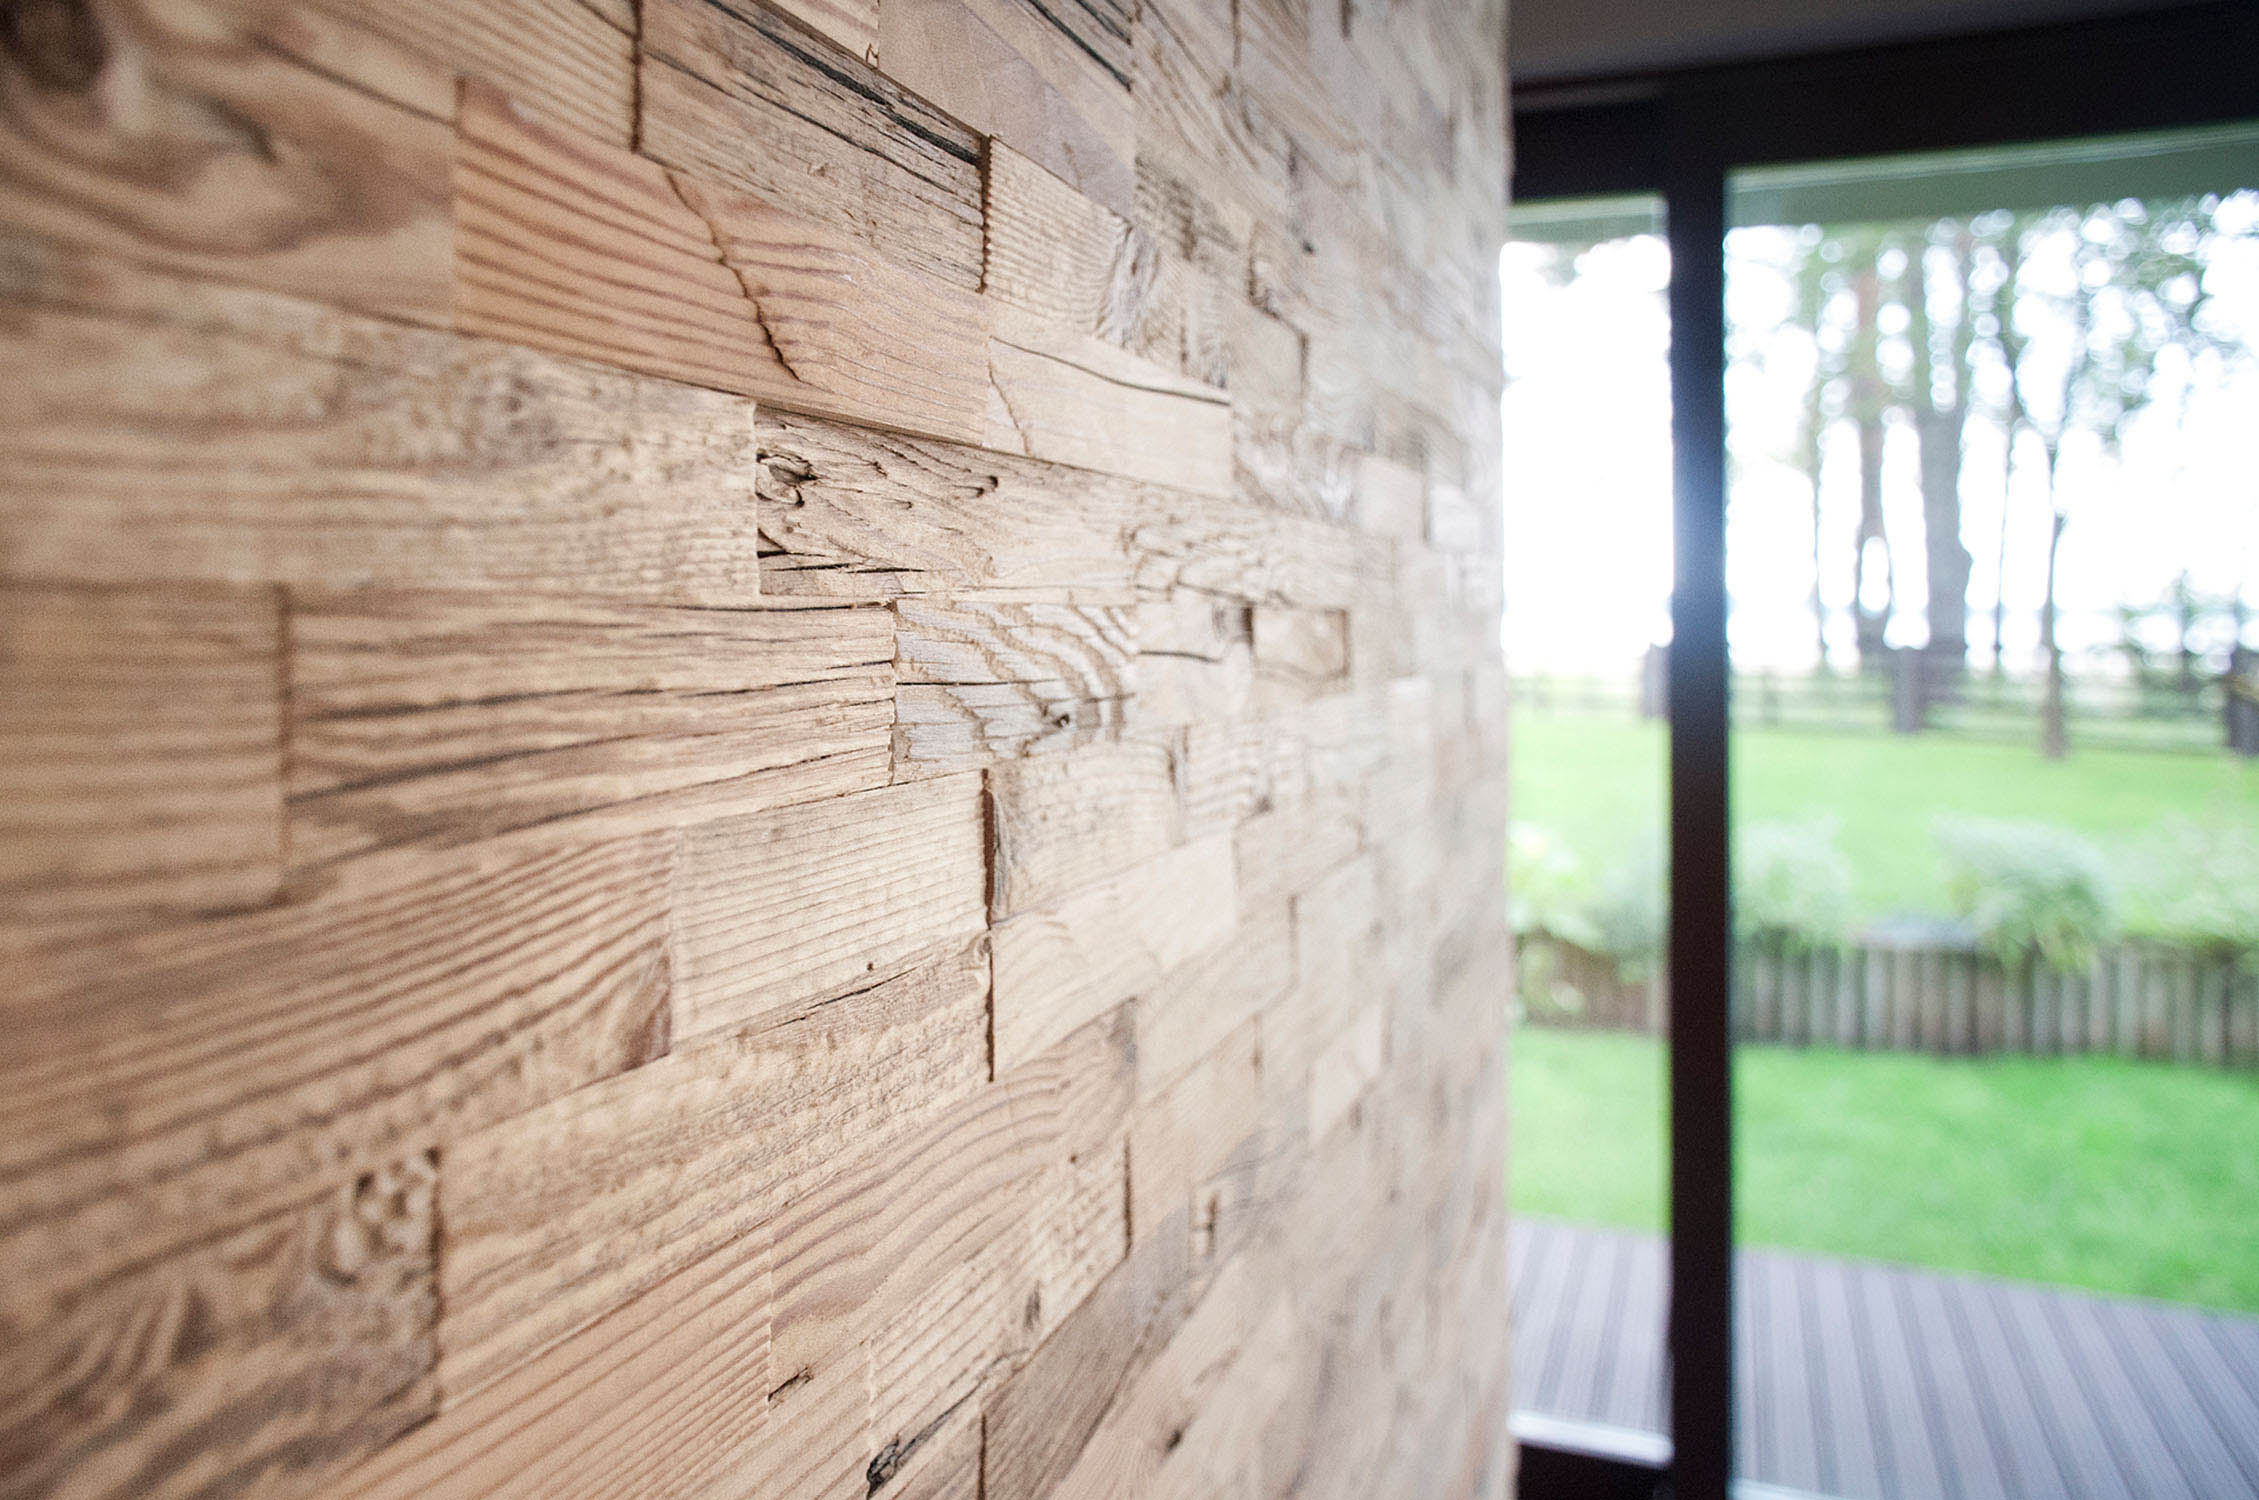 Weathered wood panels